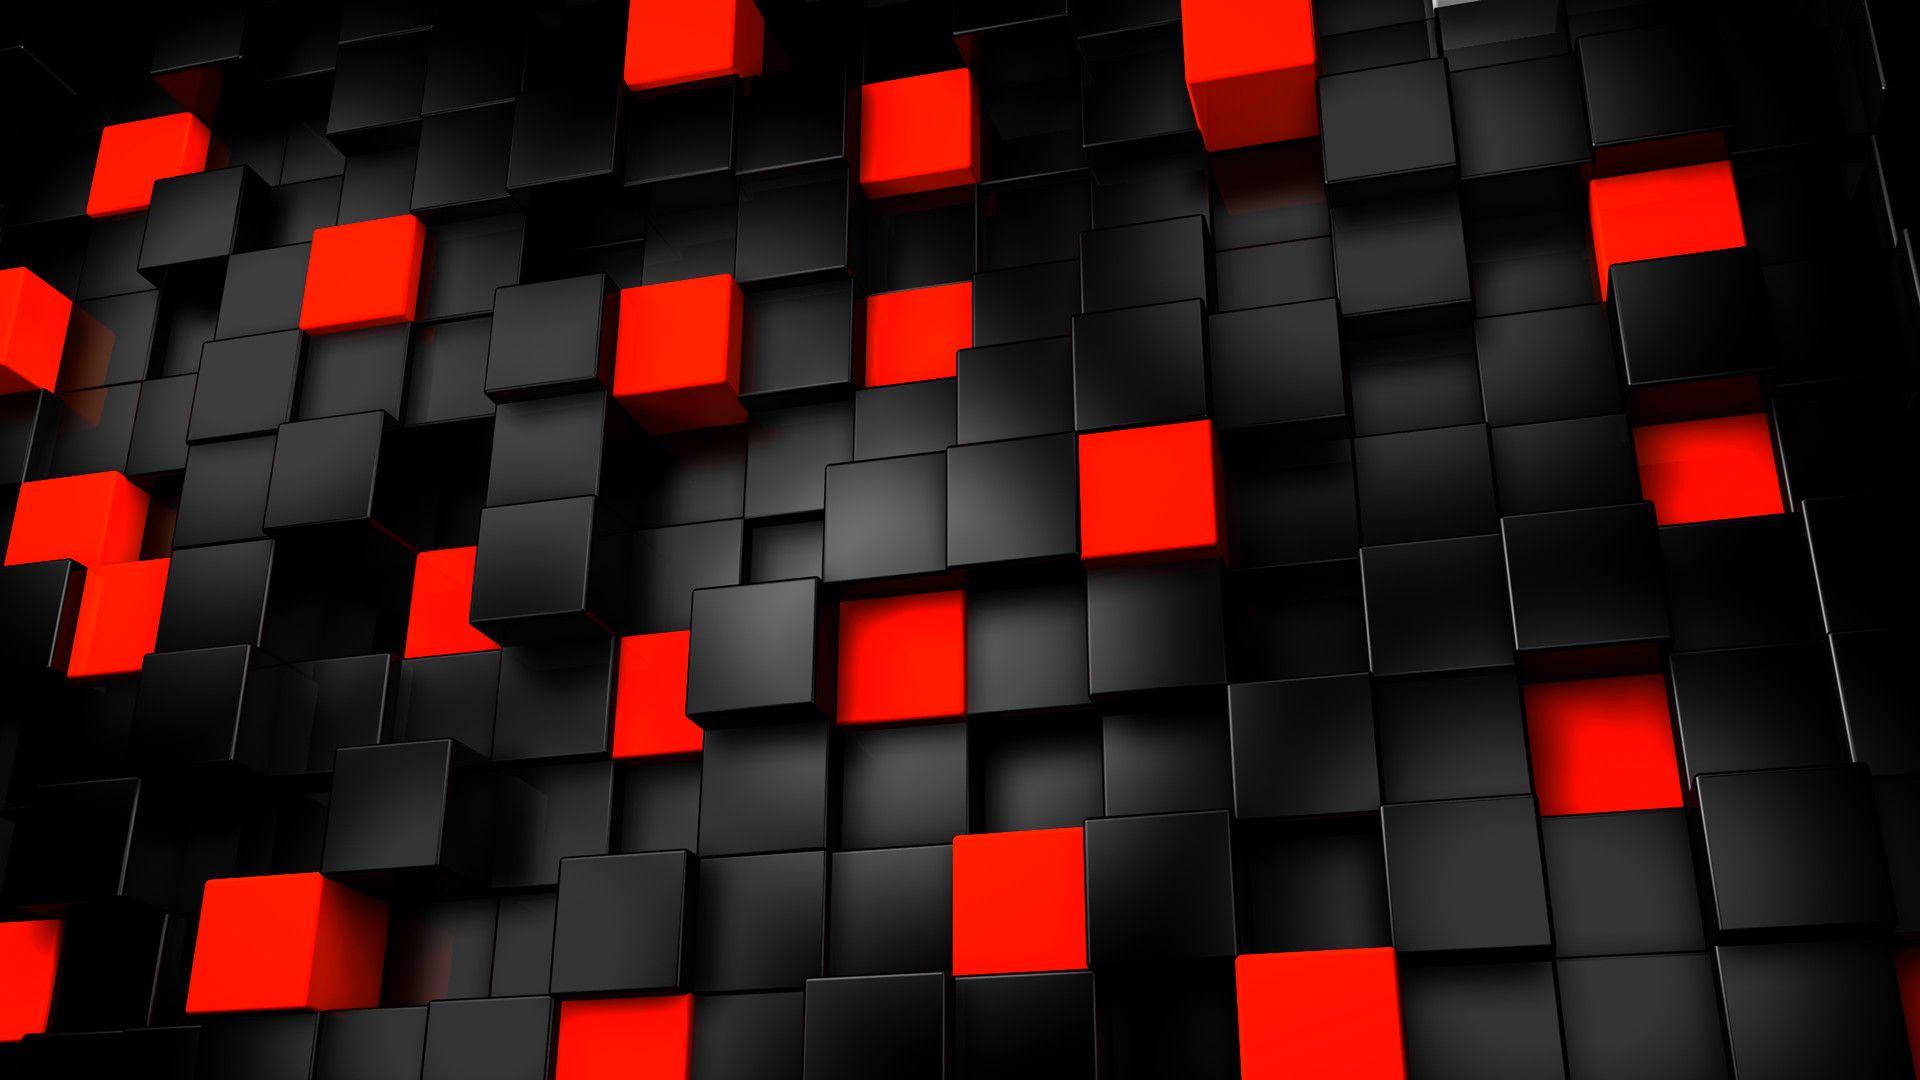 Cool Red And Black Wallpapers Download